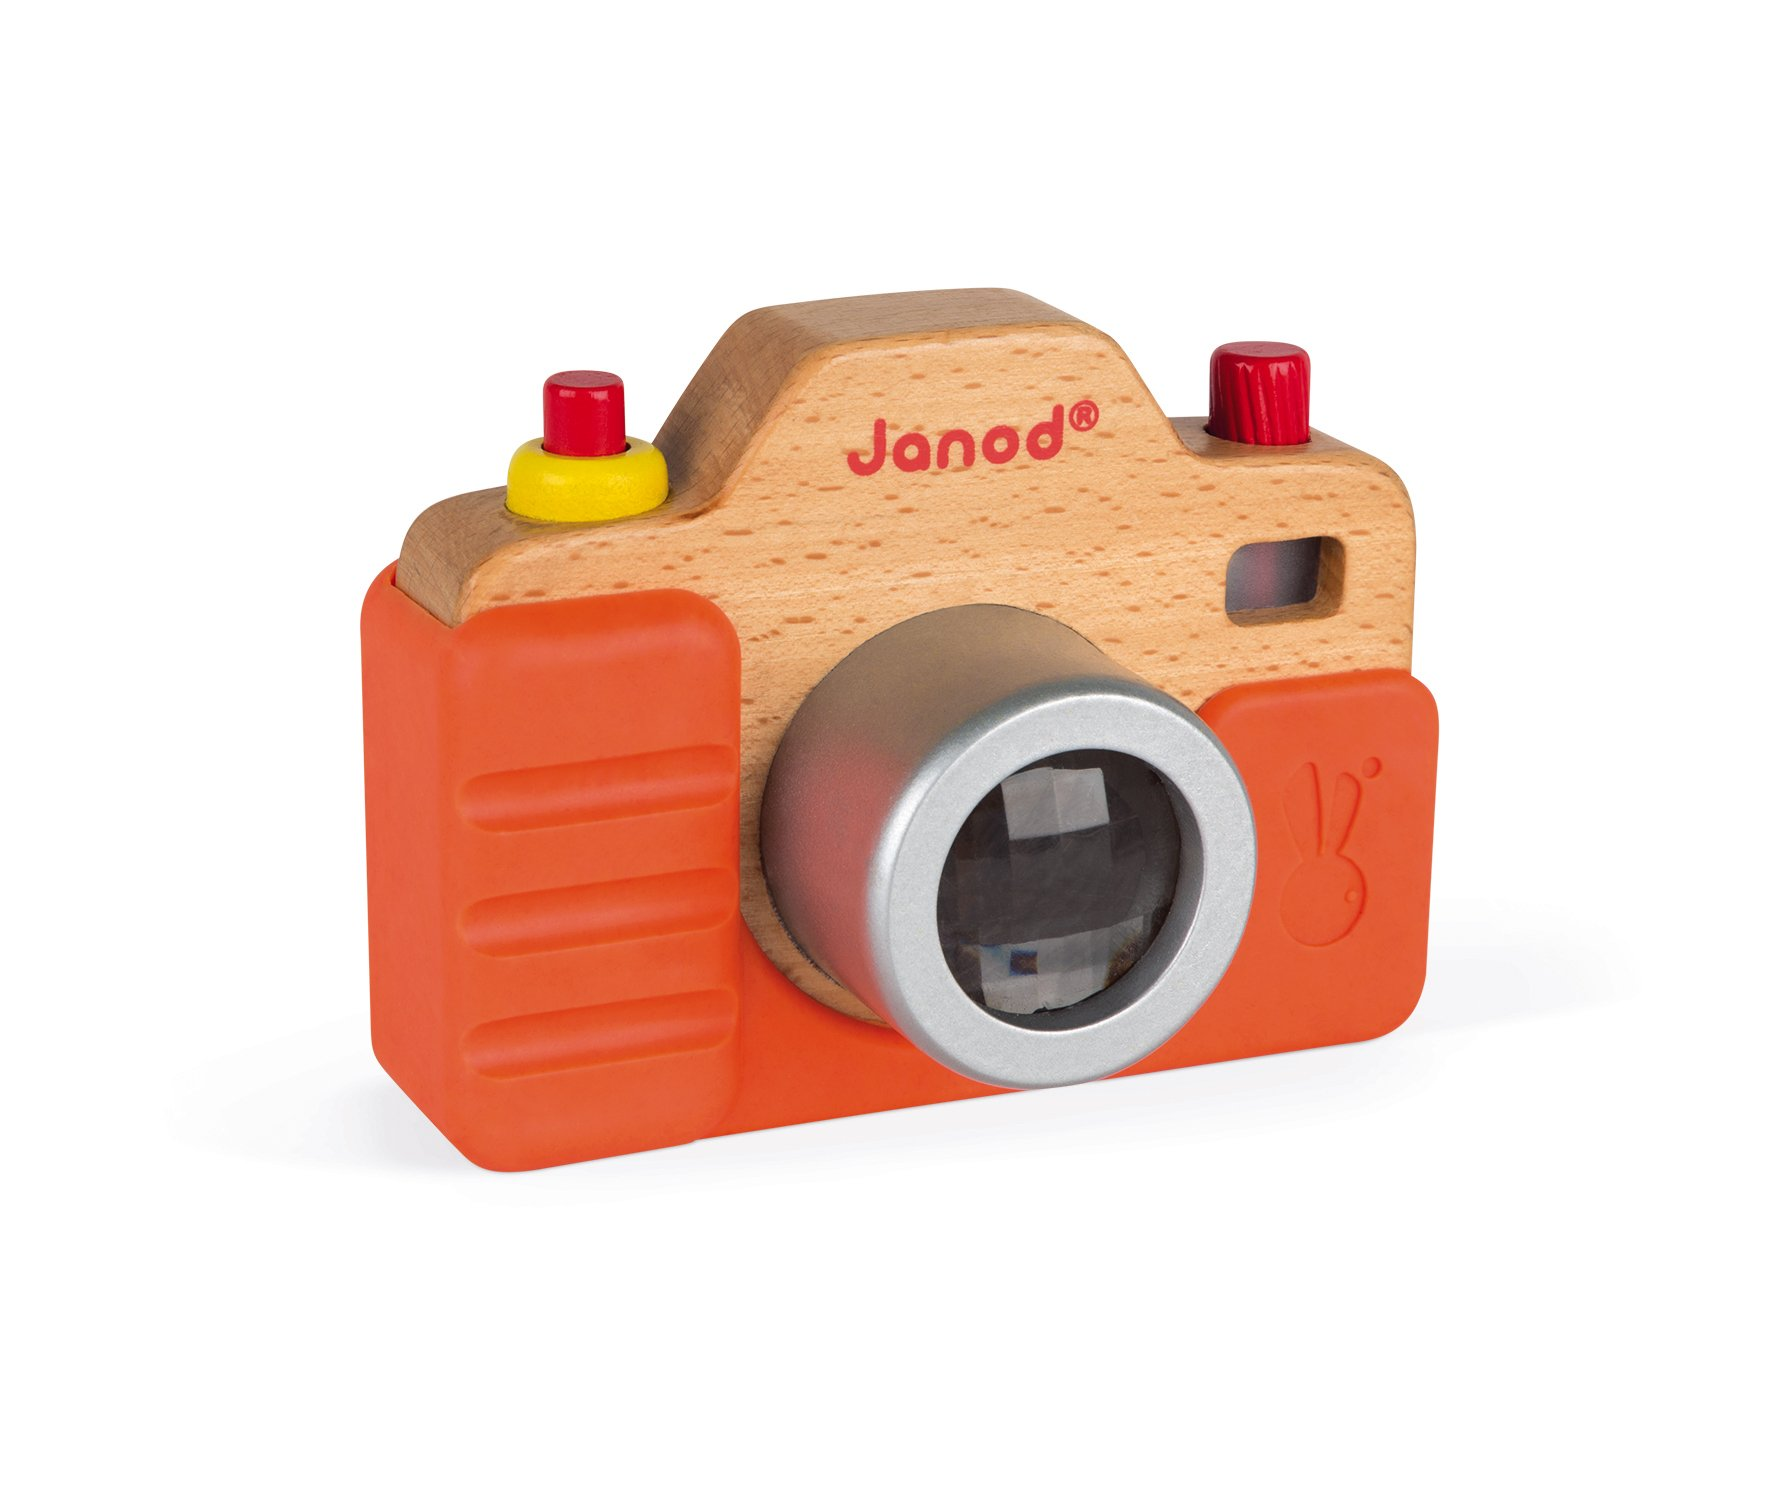 Janod Wooden Interactive Sound Camera Toy by Janod (Image #6)